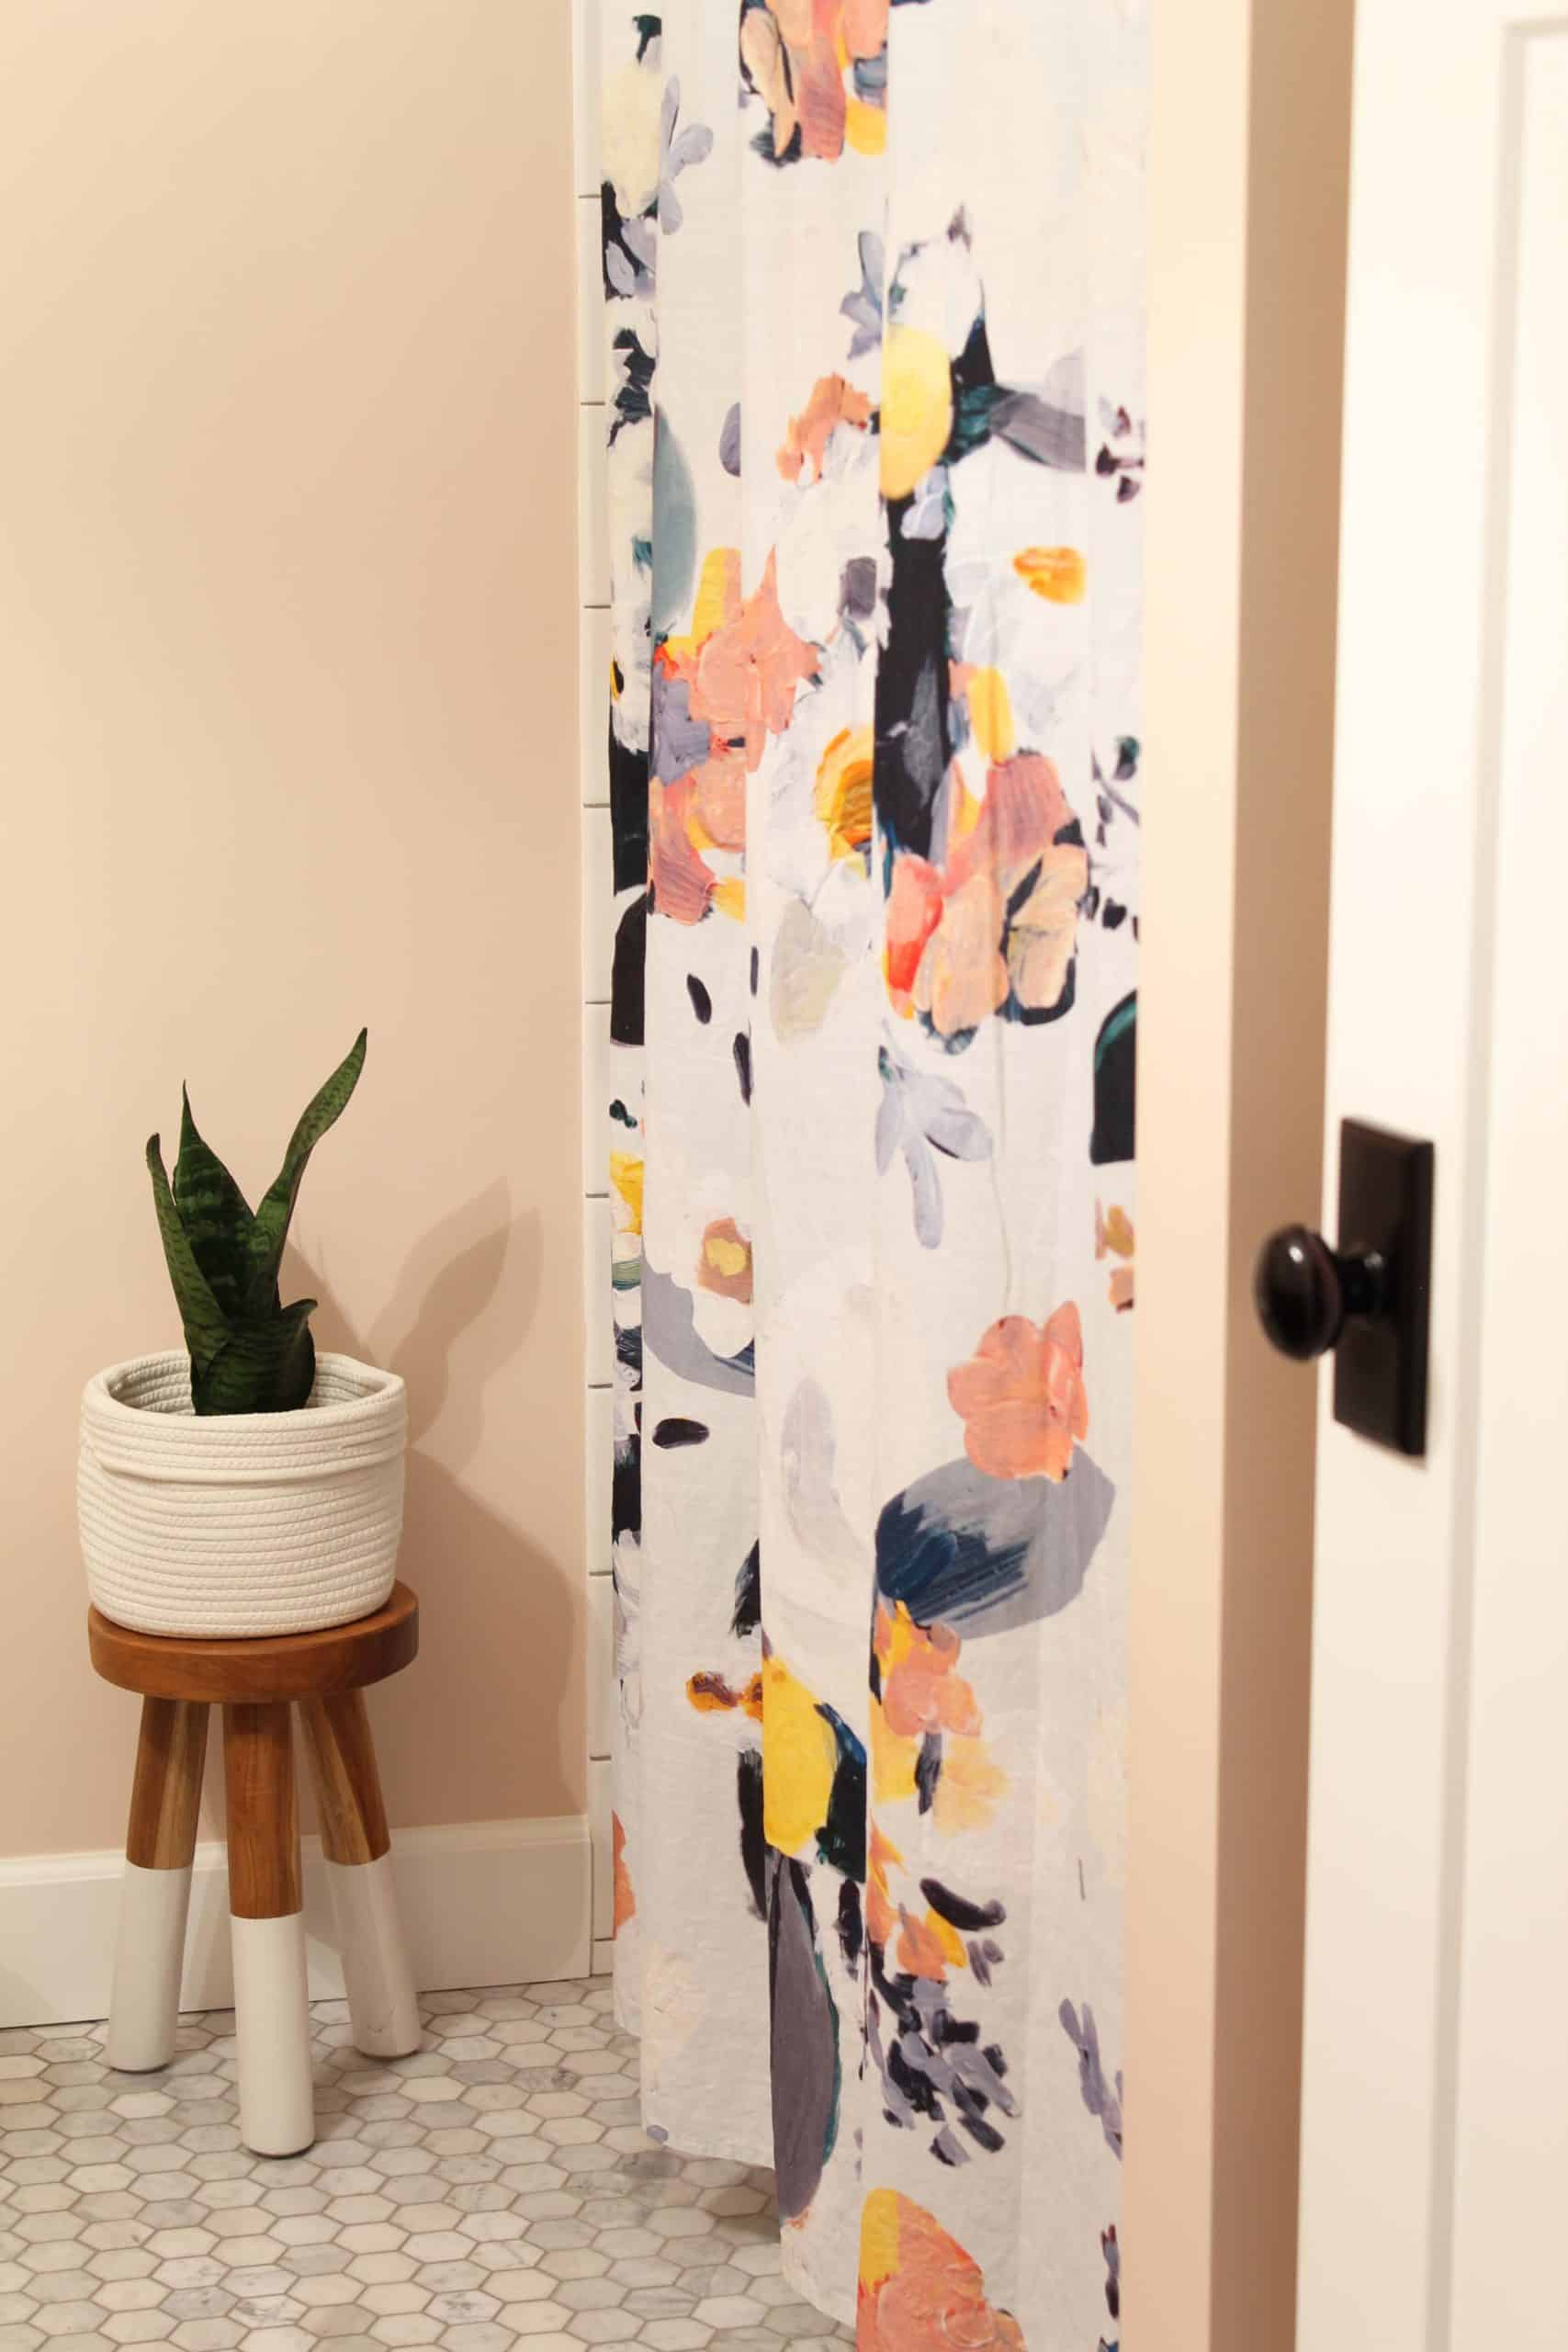 anthropologie botanica shower curtain, bathroom with pink walls, serena and lily dipped stool in bathroom with snake plant